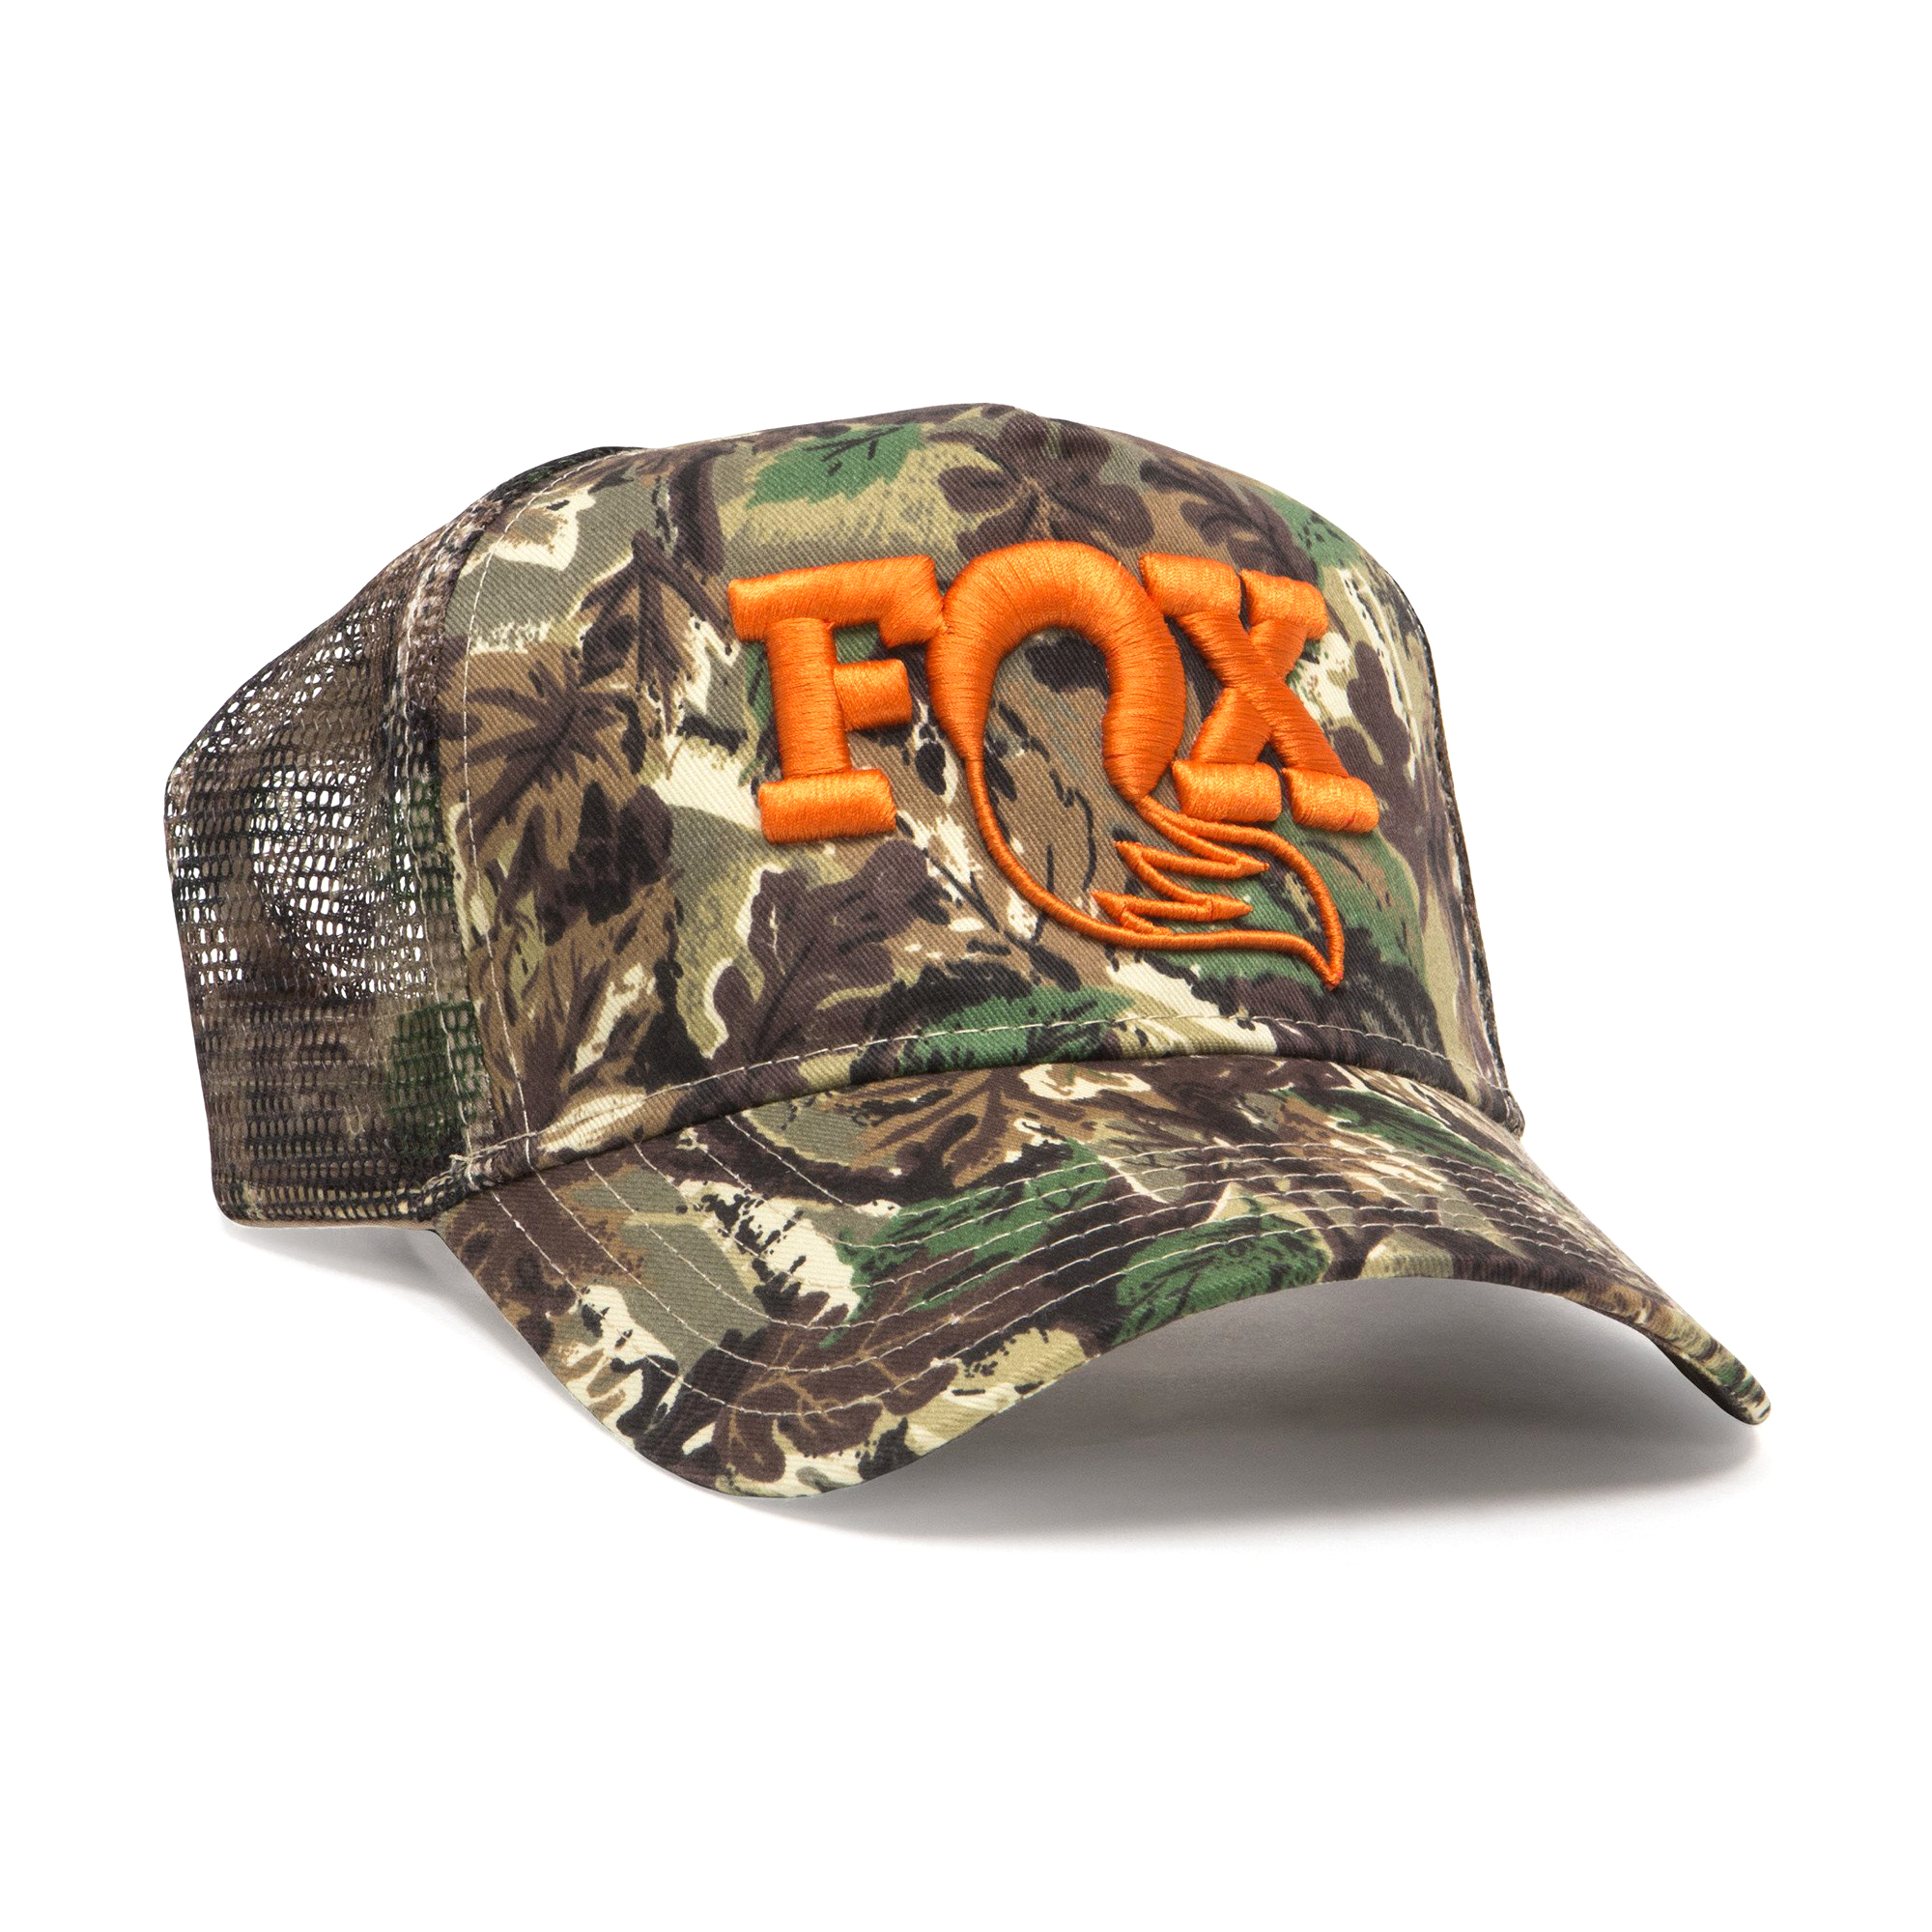 055bad4b Fox Camo Trucker Hat. 495-01-222. Email ...